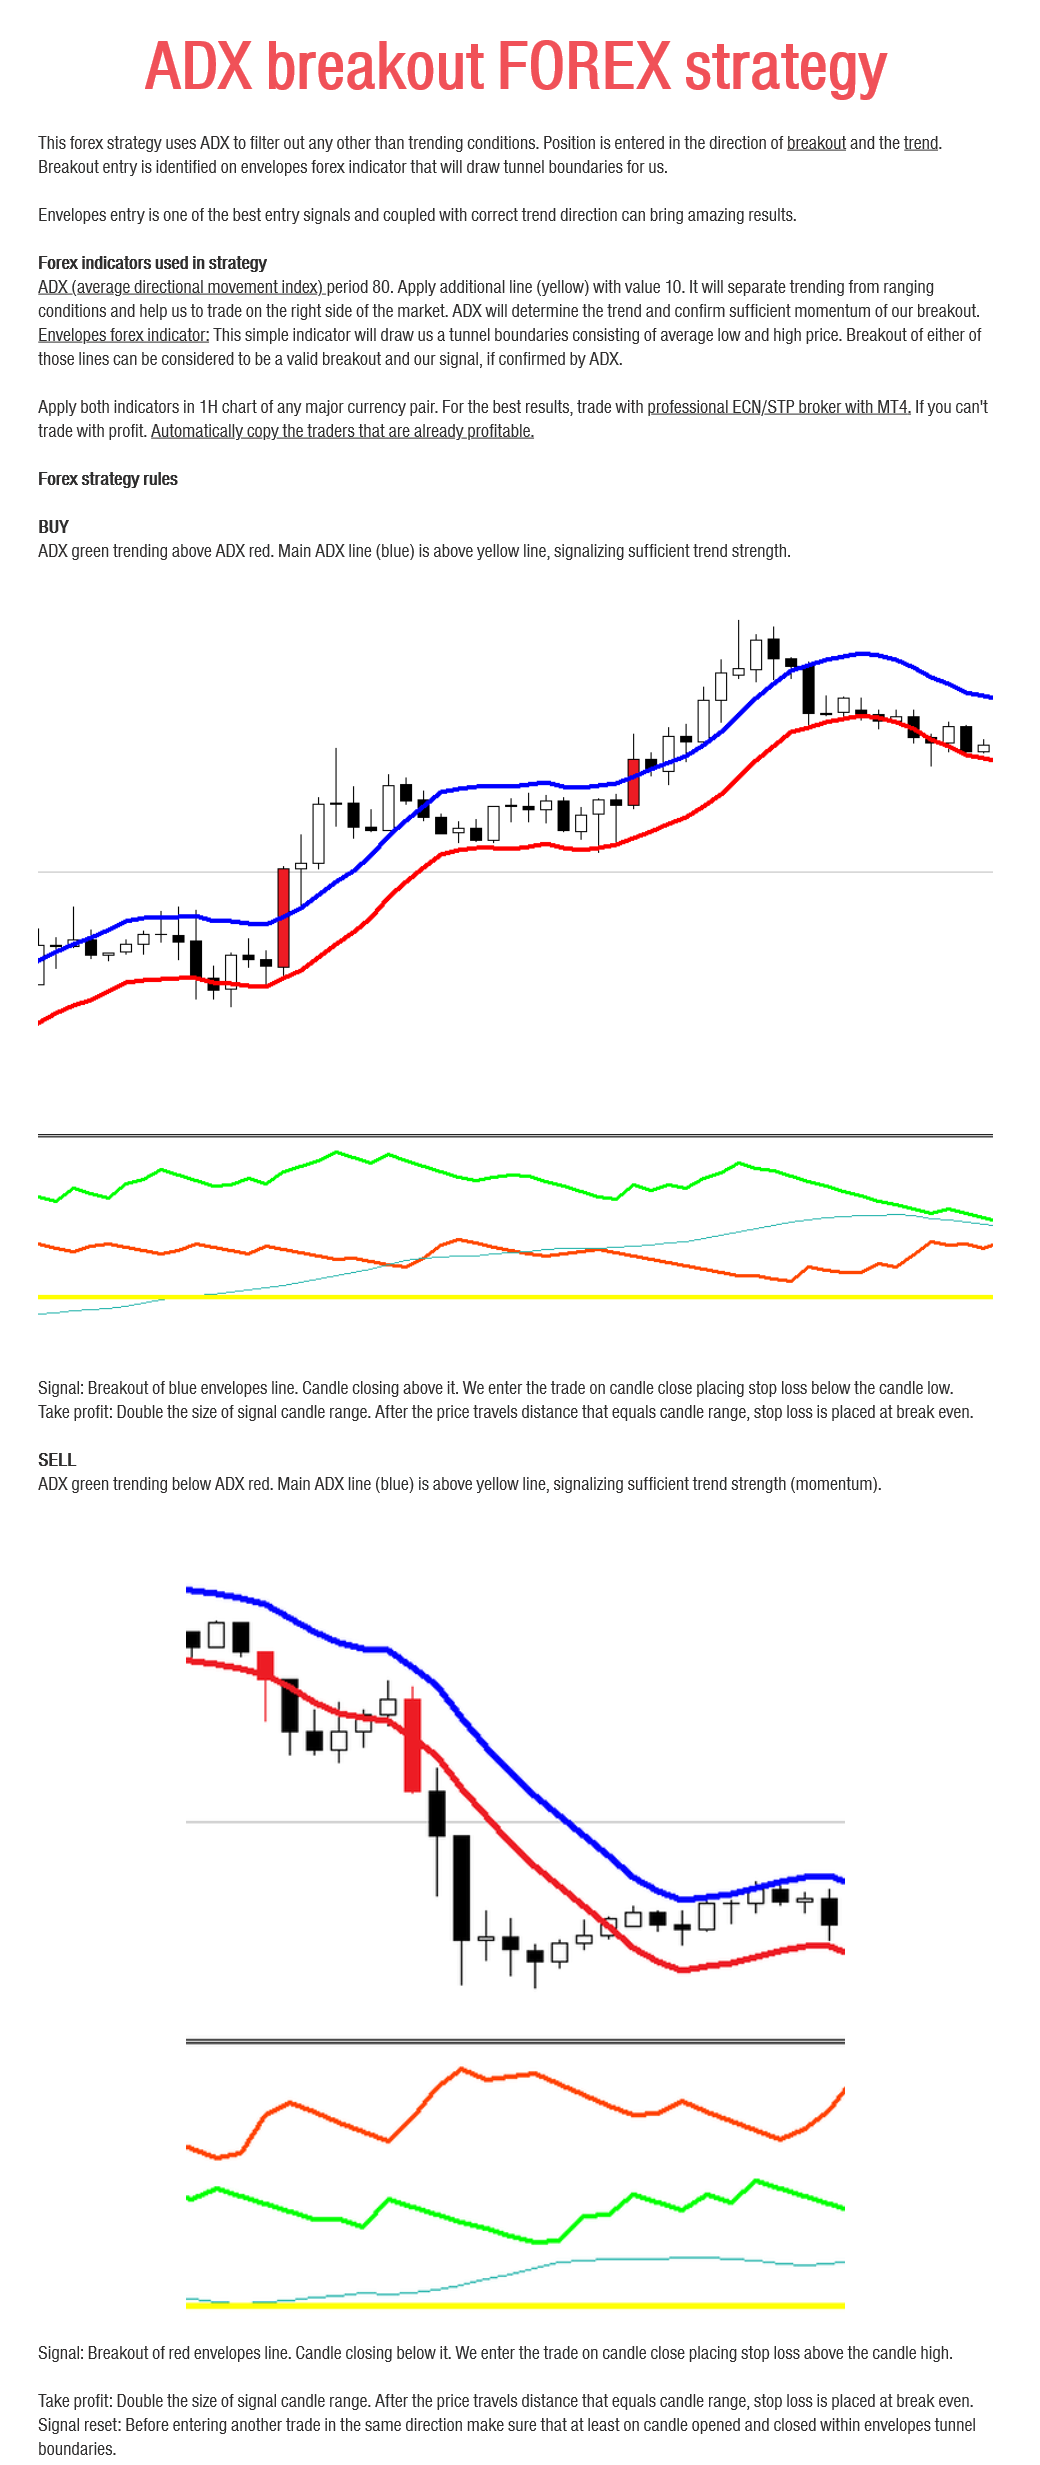 Manual ADX To Trade Breakouts forex strategy